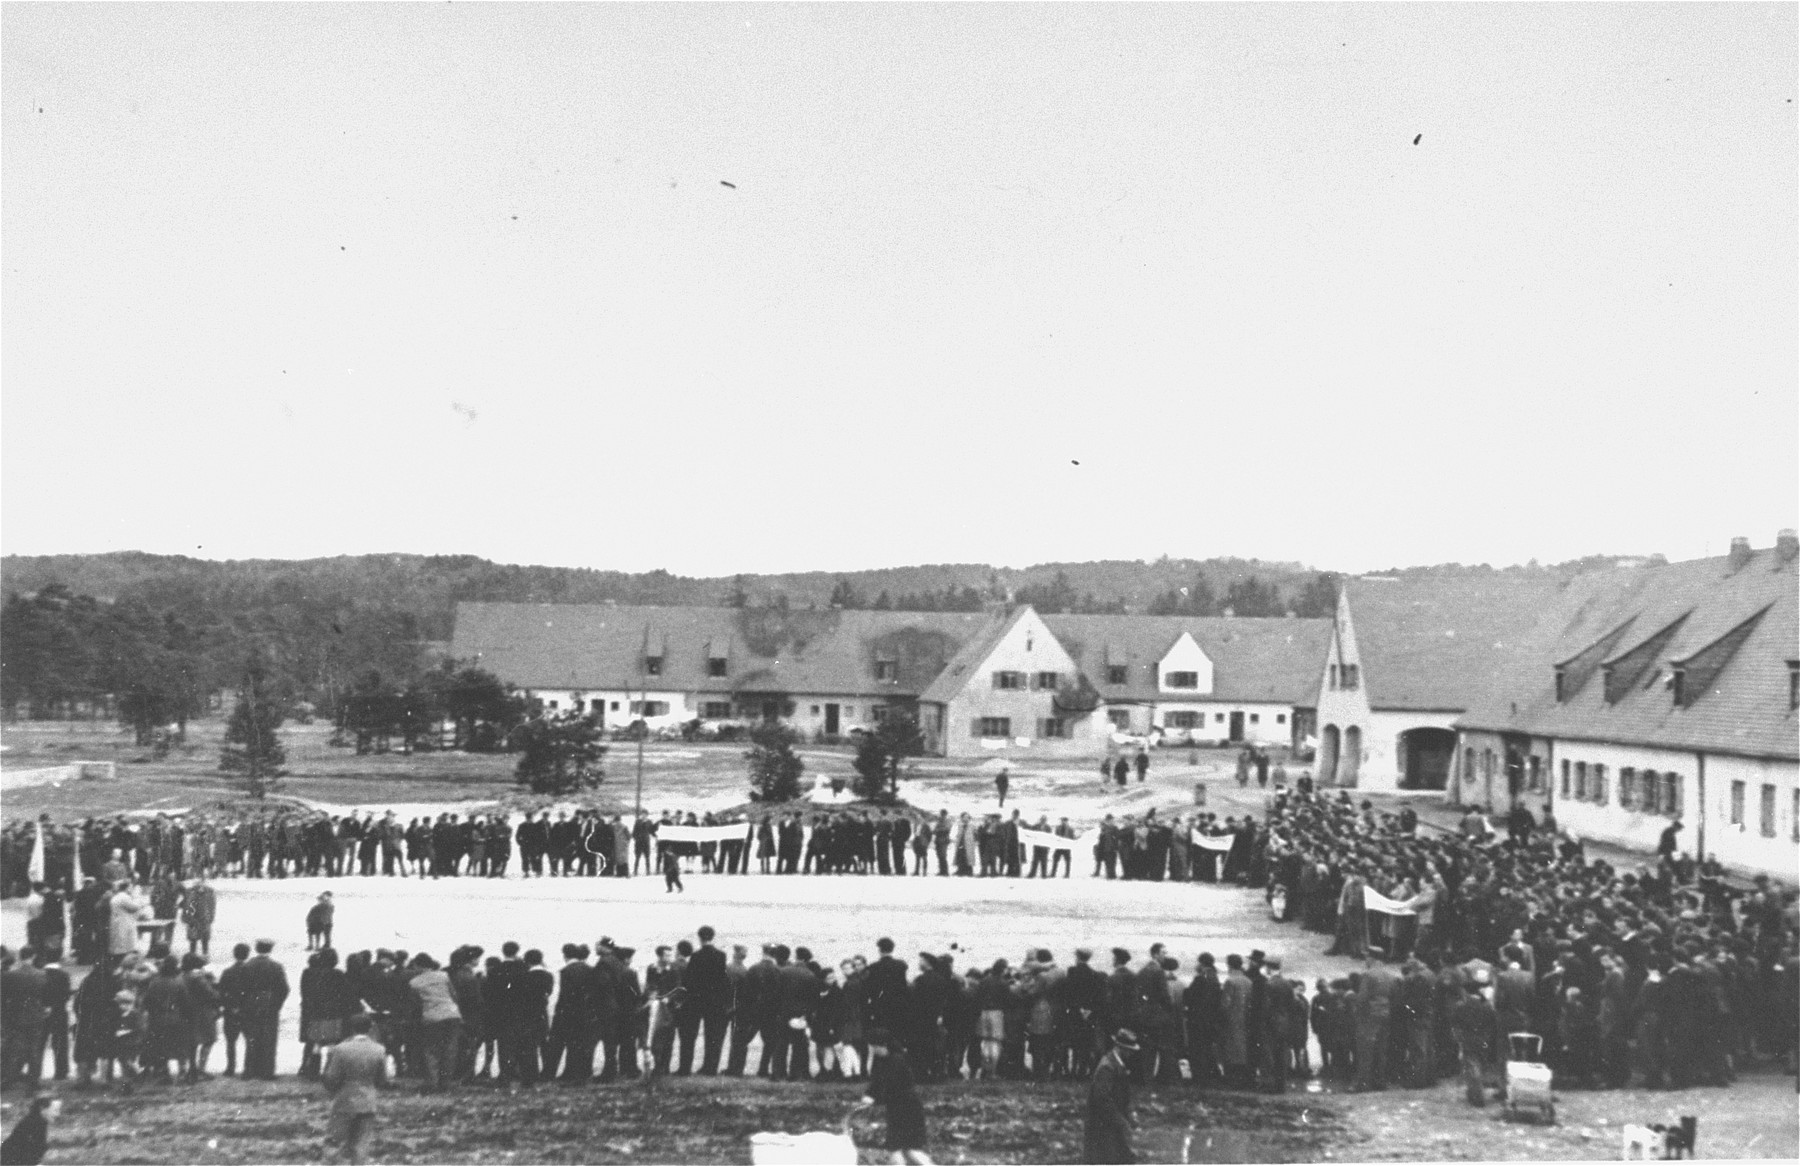 View of an anti-British demonstration at the Foehrenwald displaced persons camp.